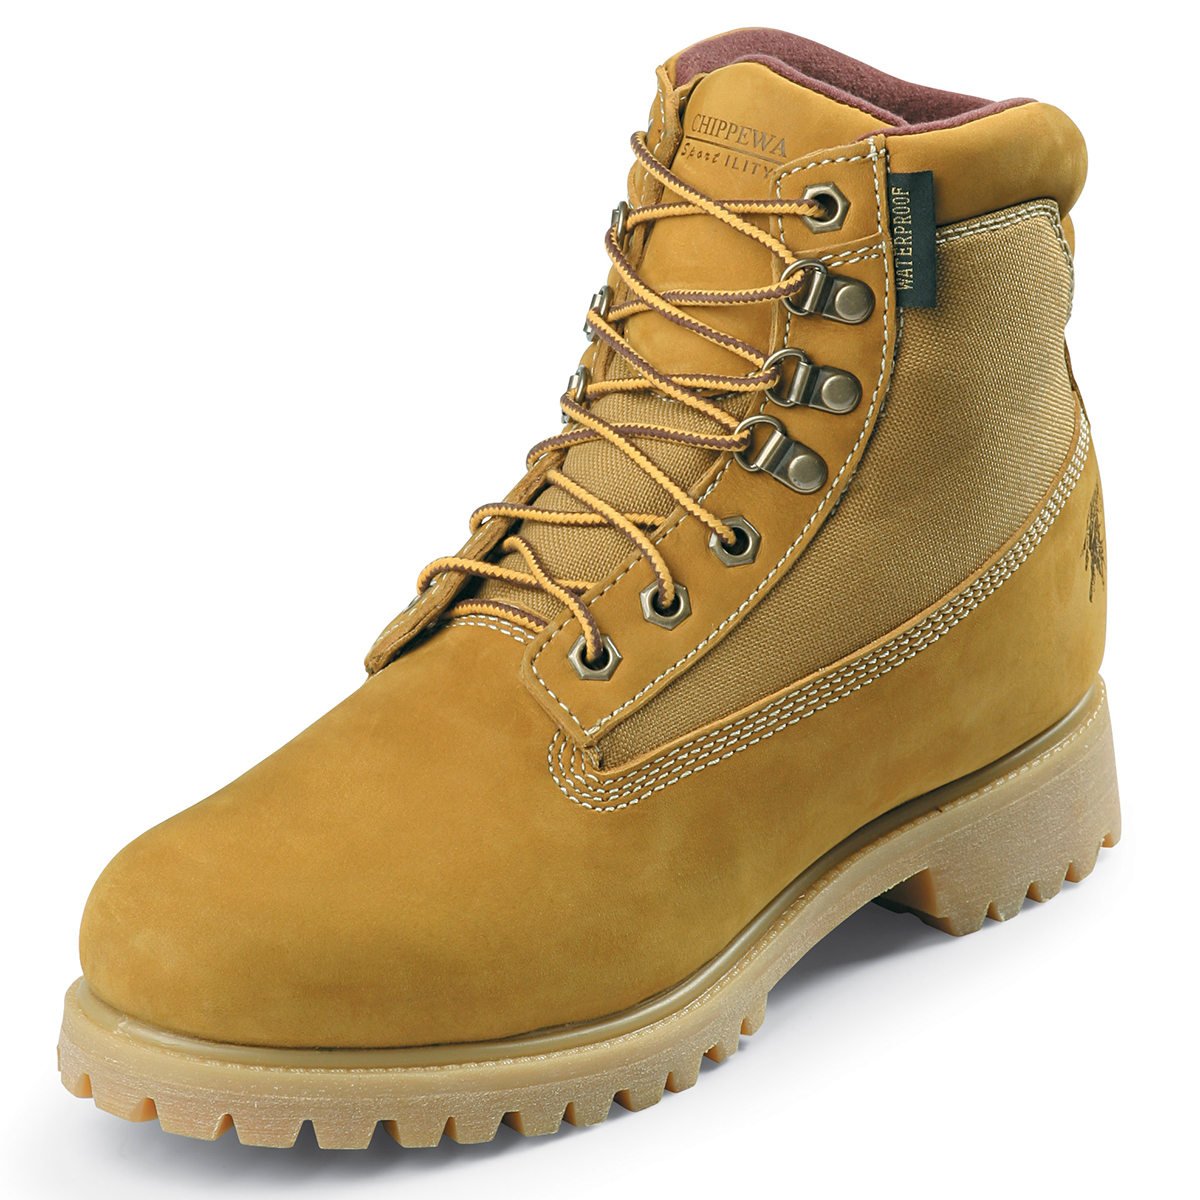 3c9167d1626 Work Boots on Sale | Bob's Stores